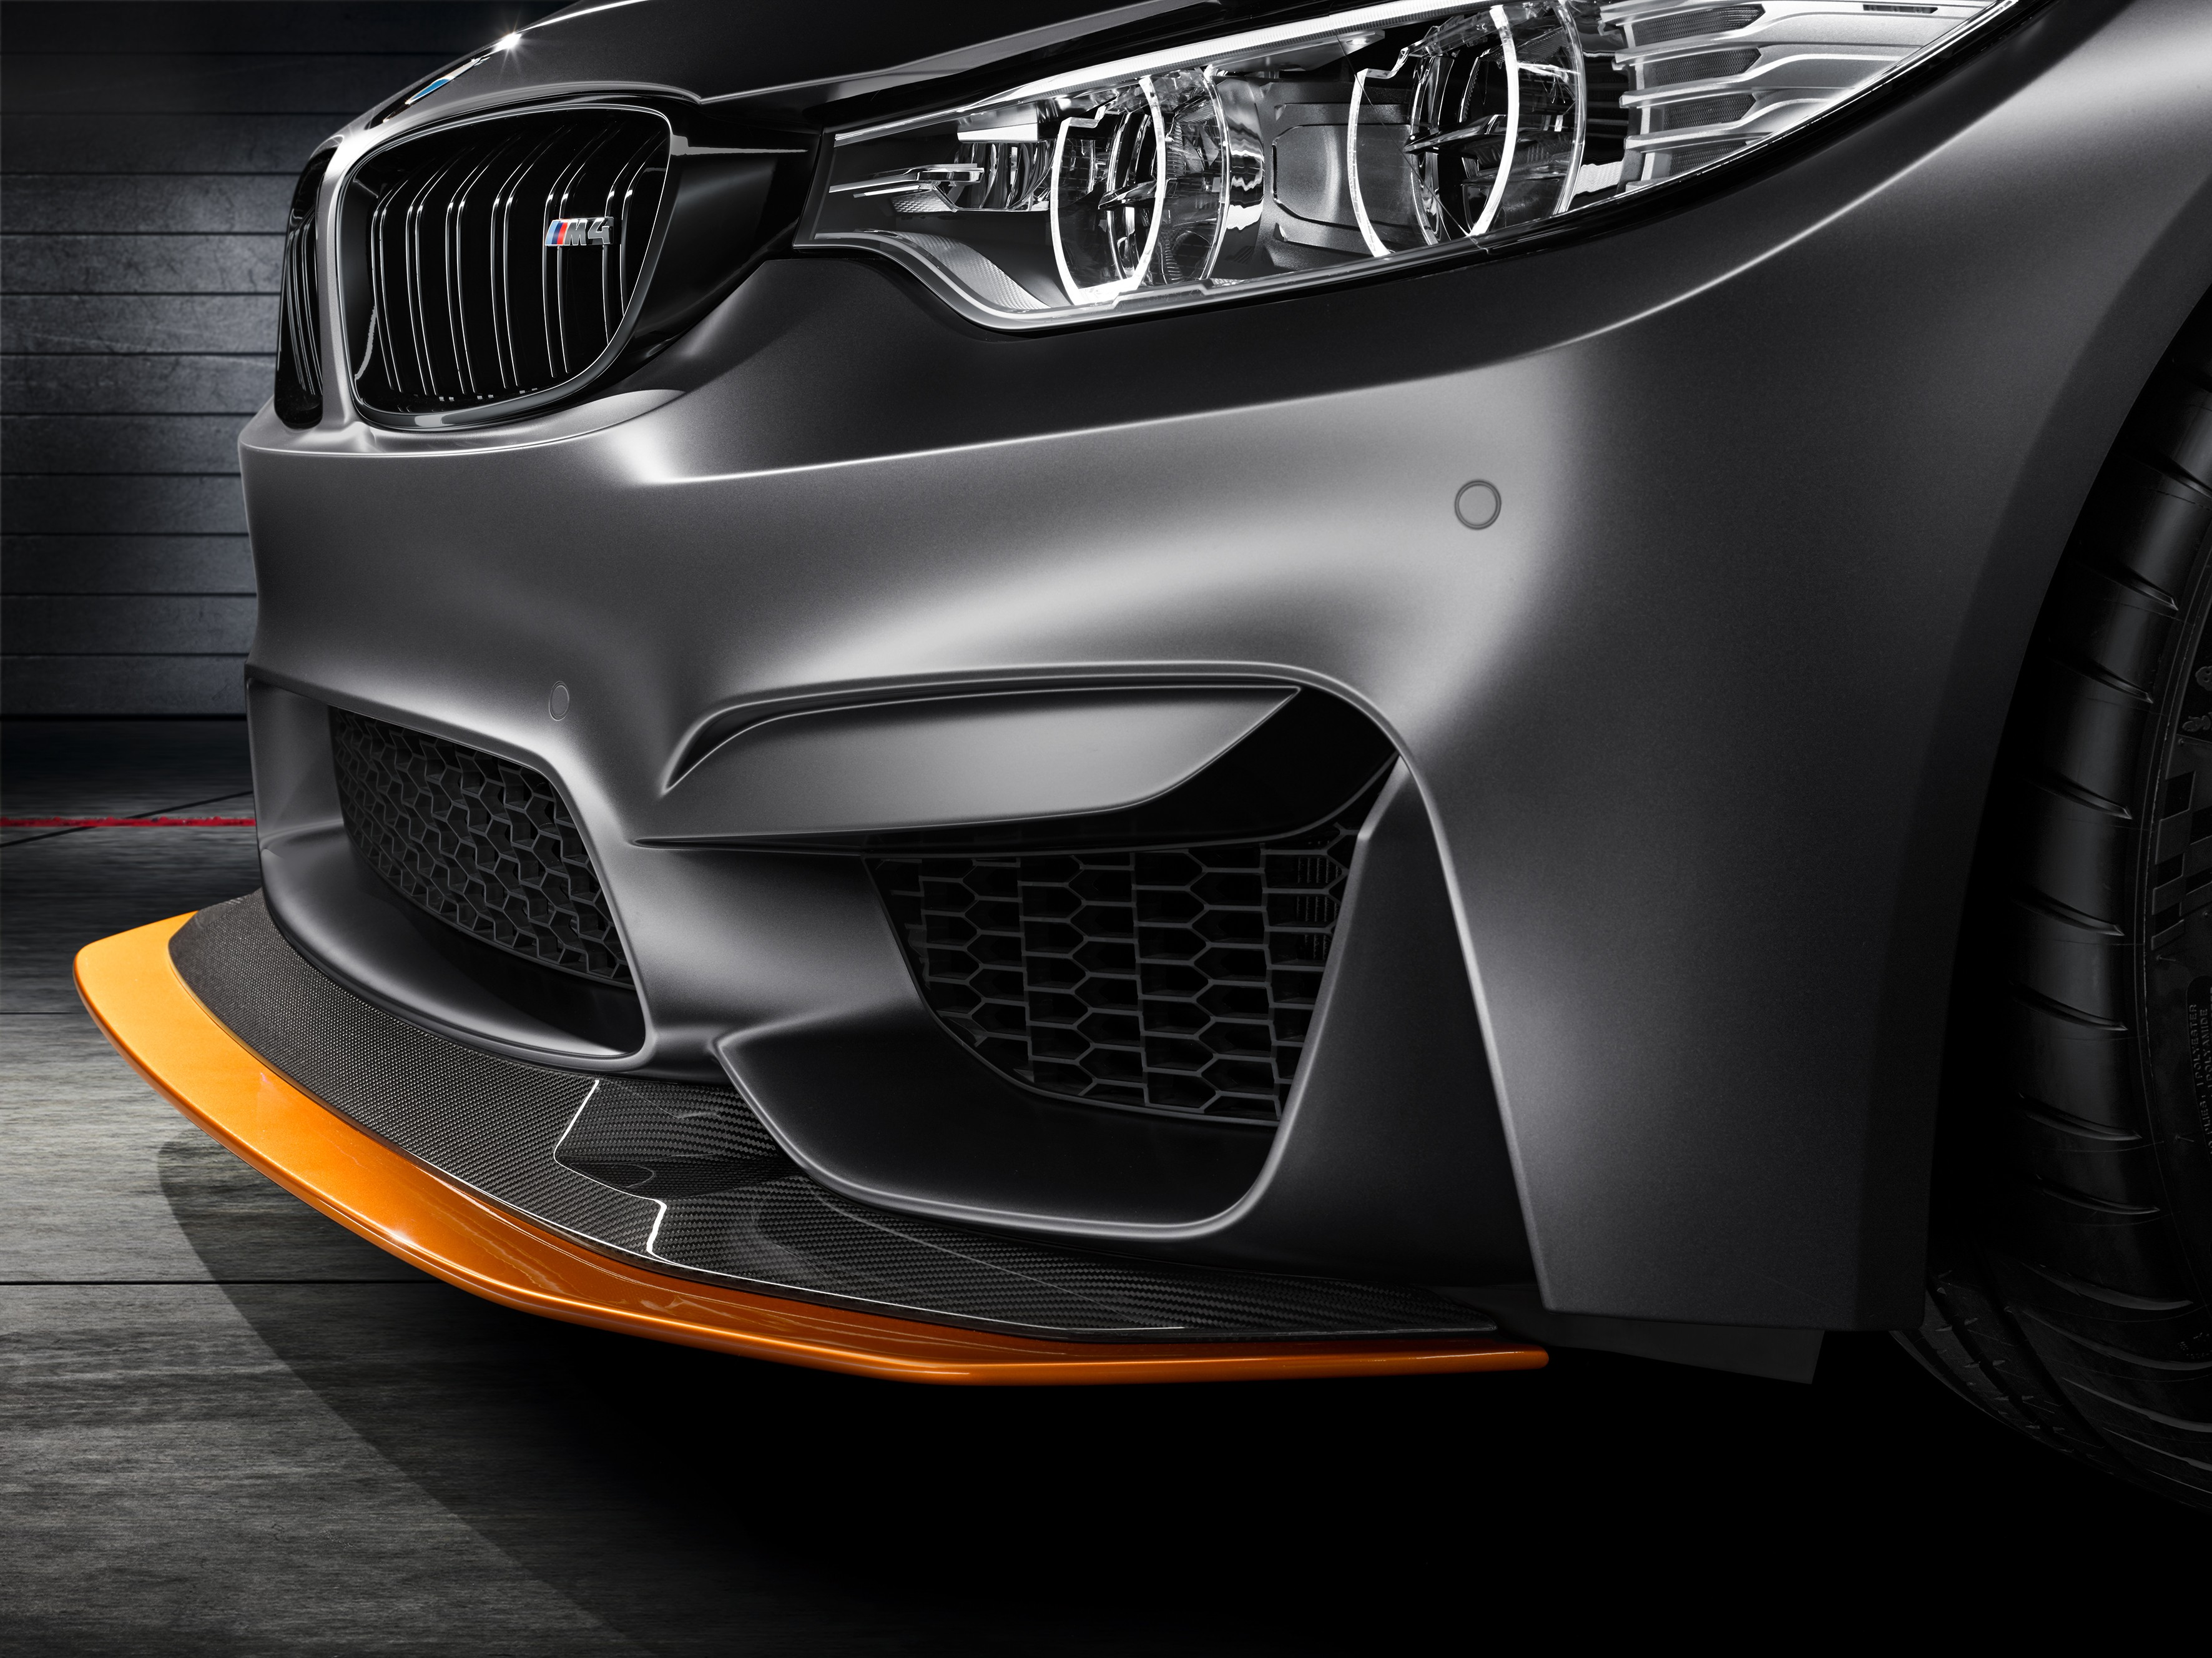 bmw-concept-m4-gts-makes-world-debut-at-pebble-beach-with-oled-lighting-photo-gallery_12